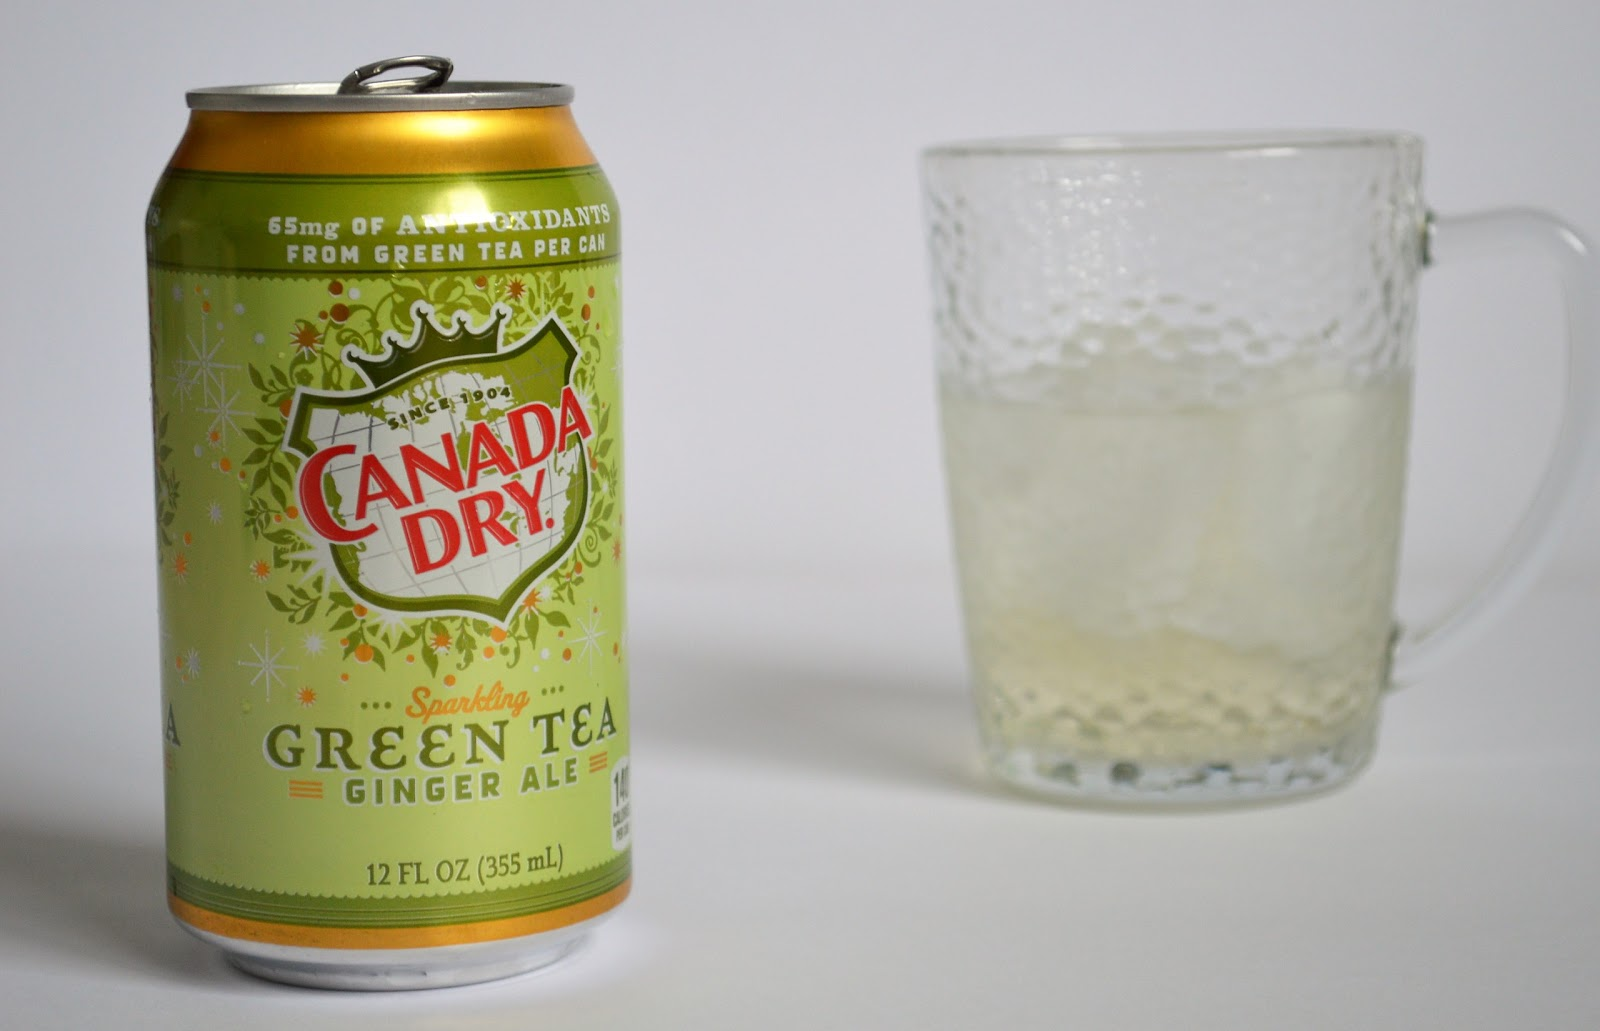 So We Finally Found Canada Dry Sparkling Green Tea Ginger Ale!